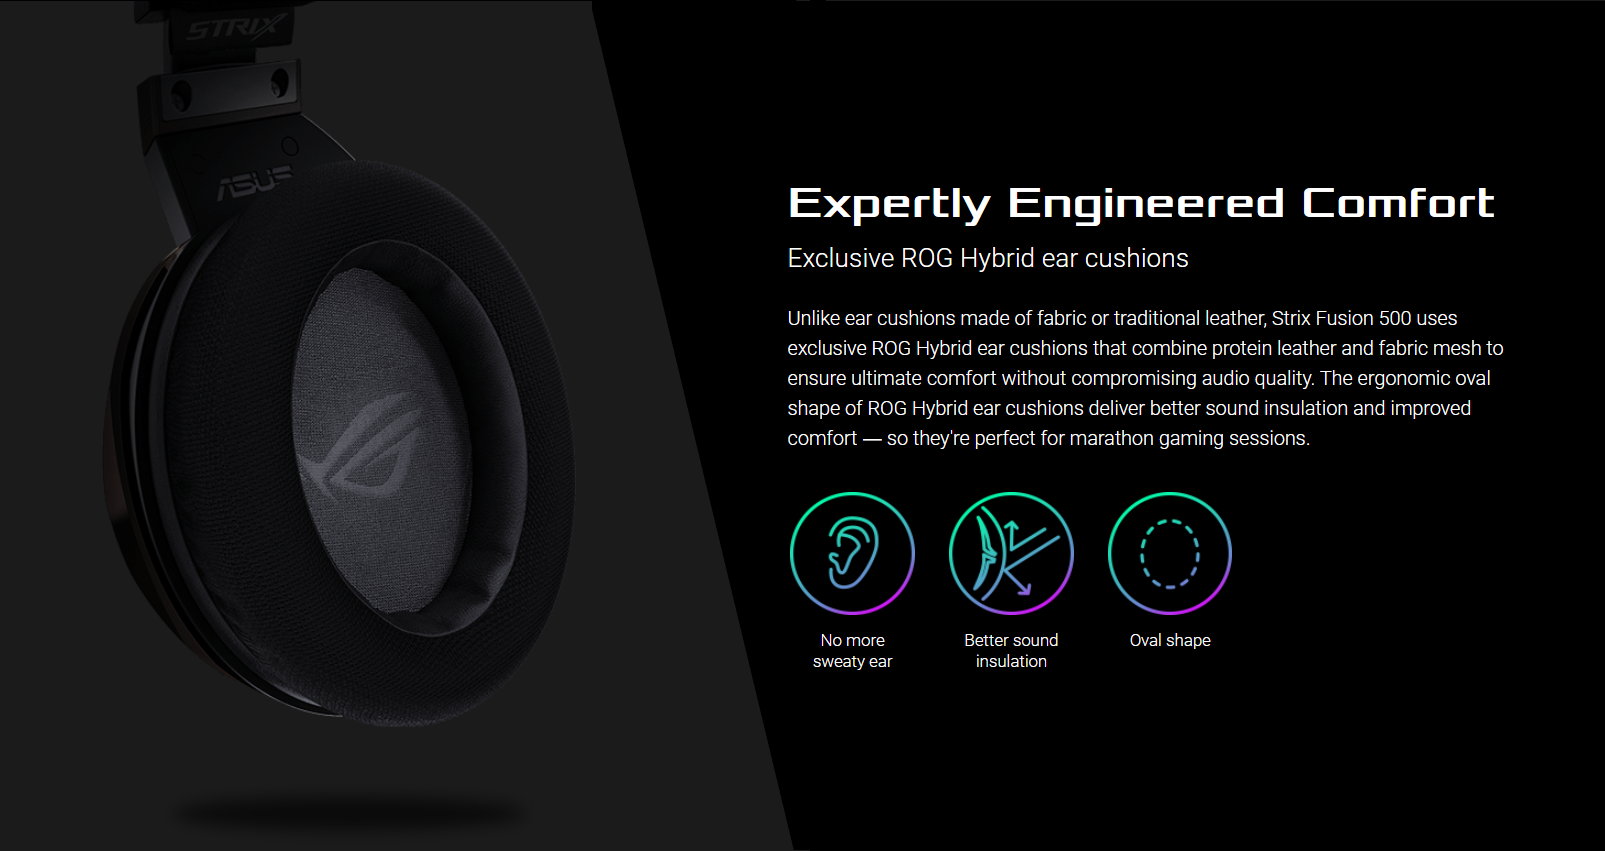 Expertly Engineered Comfort - Exclusive ROG Hybrid ear cushions - Unlike ear cushions made of fabric or traditional leather, Strix Fusion 500 uses exclusive ROG Hybrid ear cushions that combine protein leather and fabric mesh to ensure ultimate comfort without compromising audio quality. The ergonomic oval shape of ROG Hybrid ear cushions deliver better sound insulation and improved comfort ― so they're perfect for marathon gaming sessions.